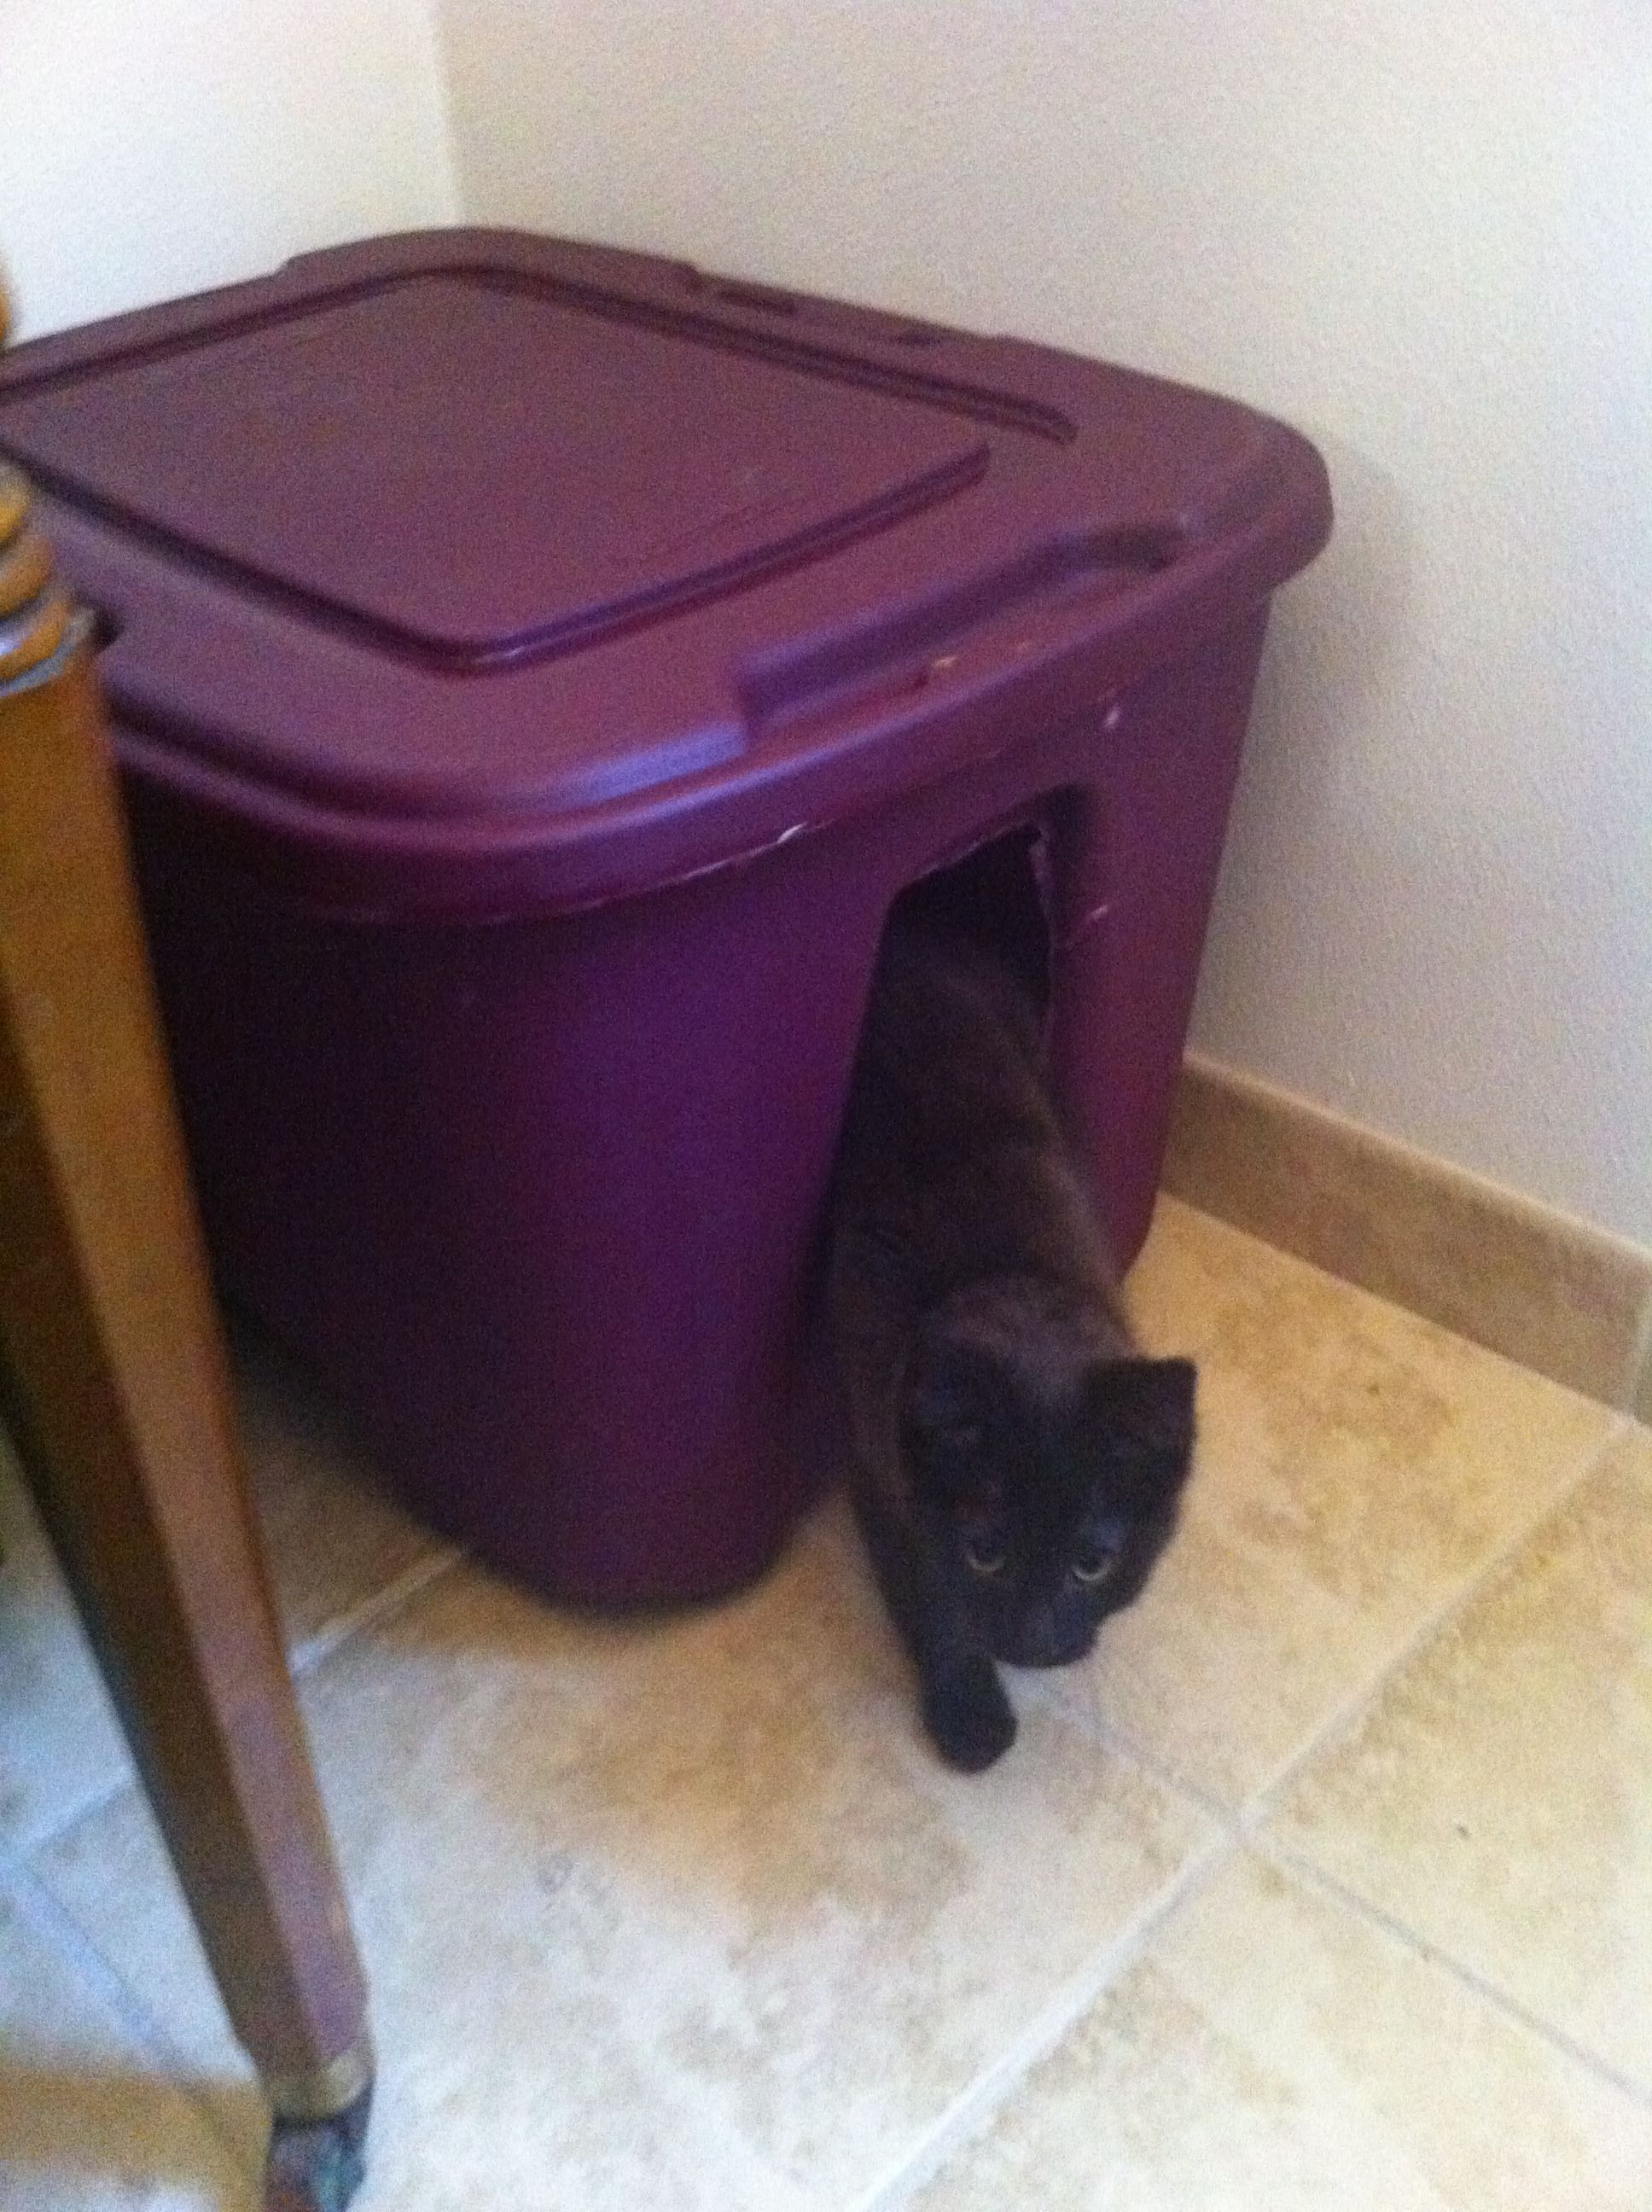 Diy Cat Litter Box Hideaway On The Cheap I Couldn T Find Those Planter Litter Boxes So I Just Used This The Box Pan I Cat Litter Box Cat Scratcher Litter Box